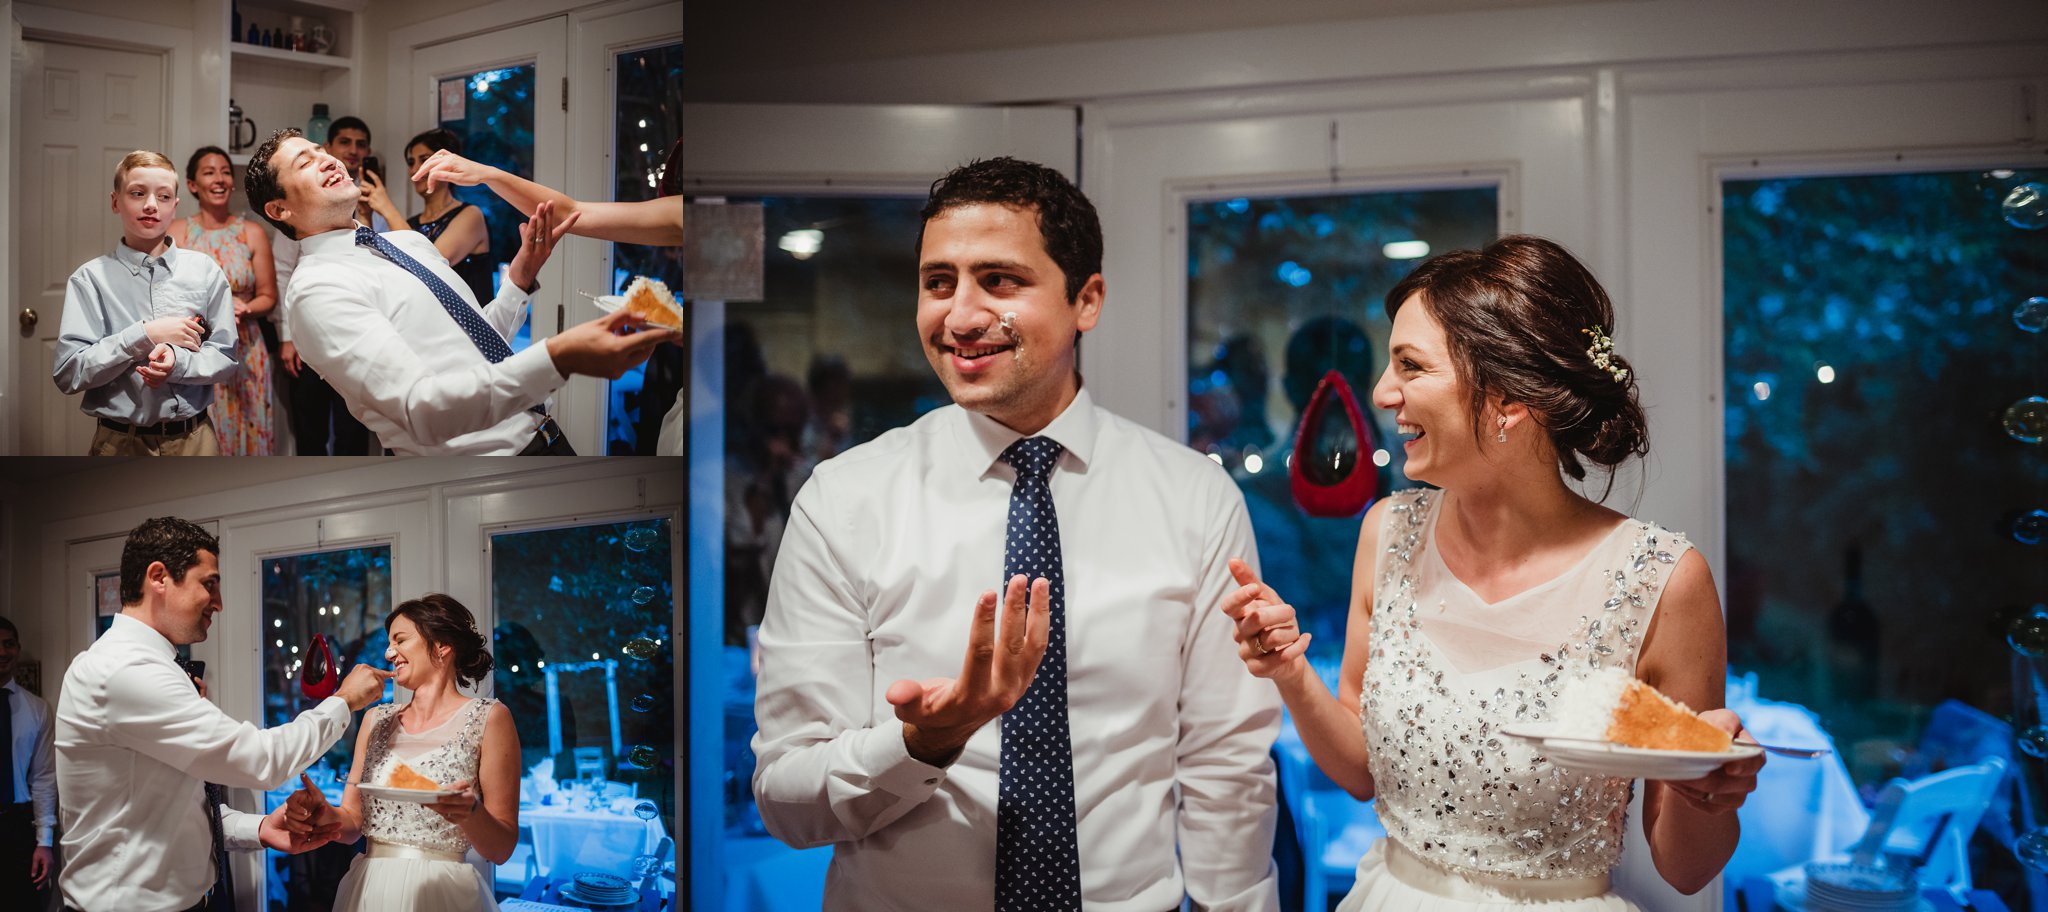 The bride and groom smush their coconut cake on each other's faces inside their home during their intimate wedding at their home in Raleigh, North Carolina, pictures by Rose Trail Images.